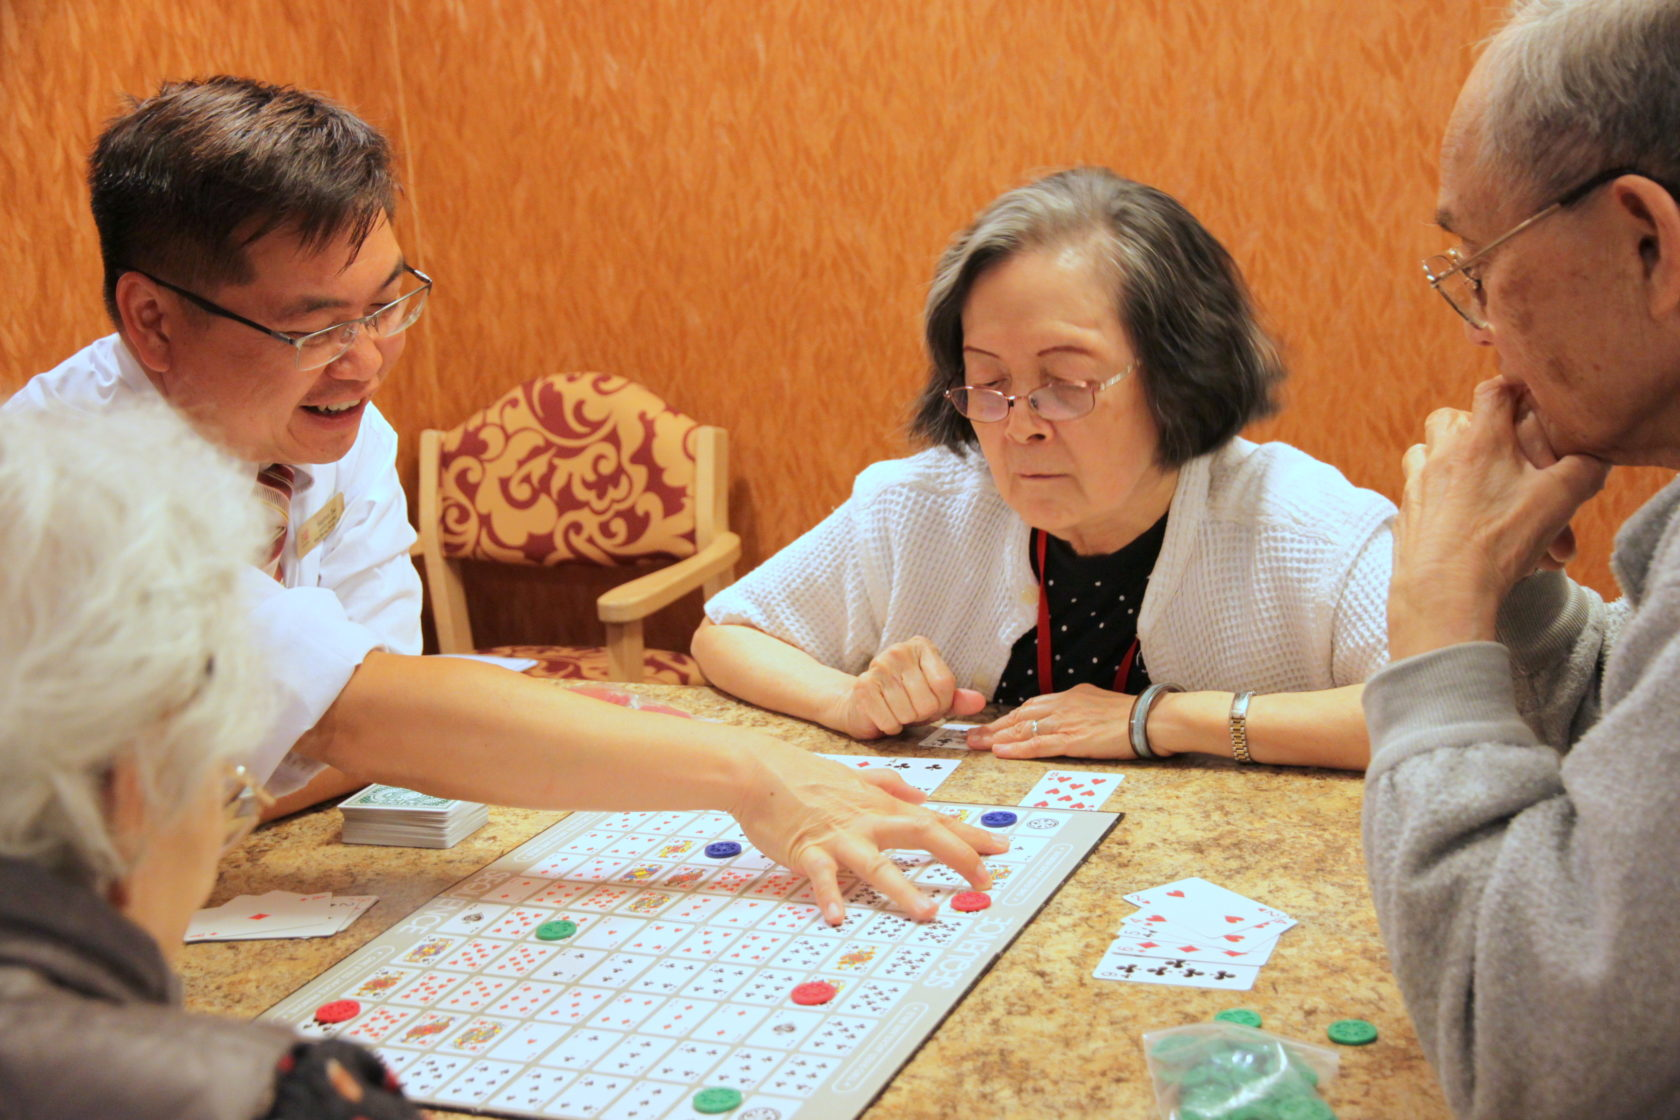 Private Care residents are playing board game together